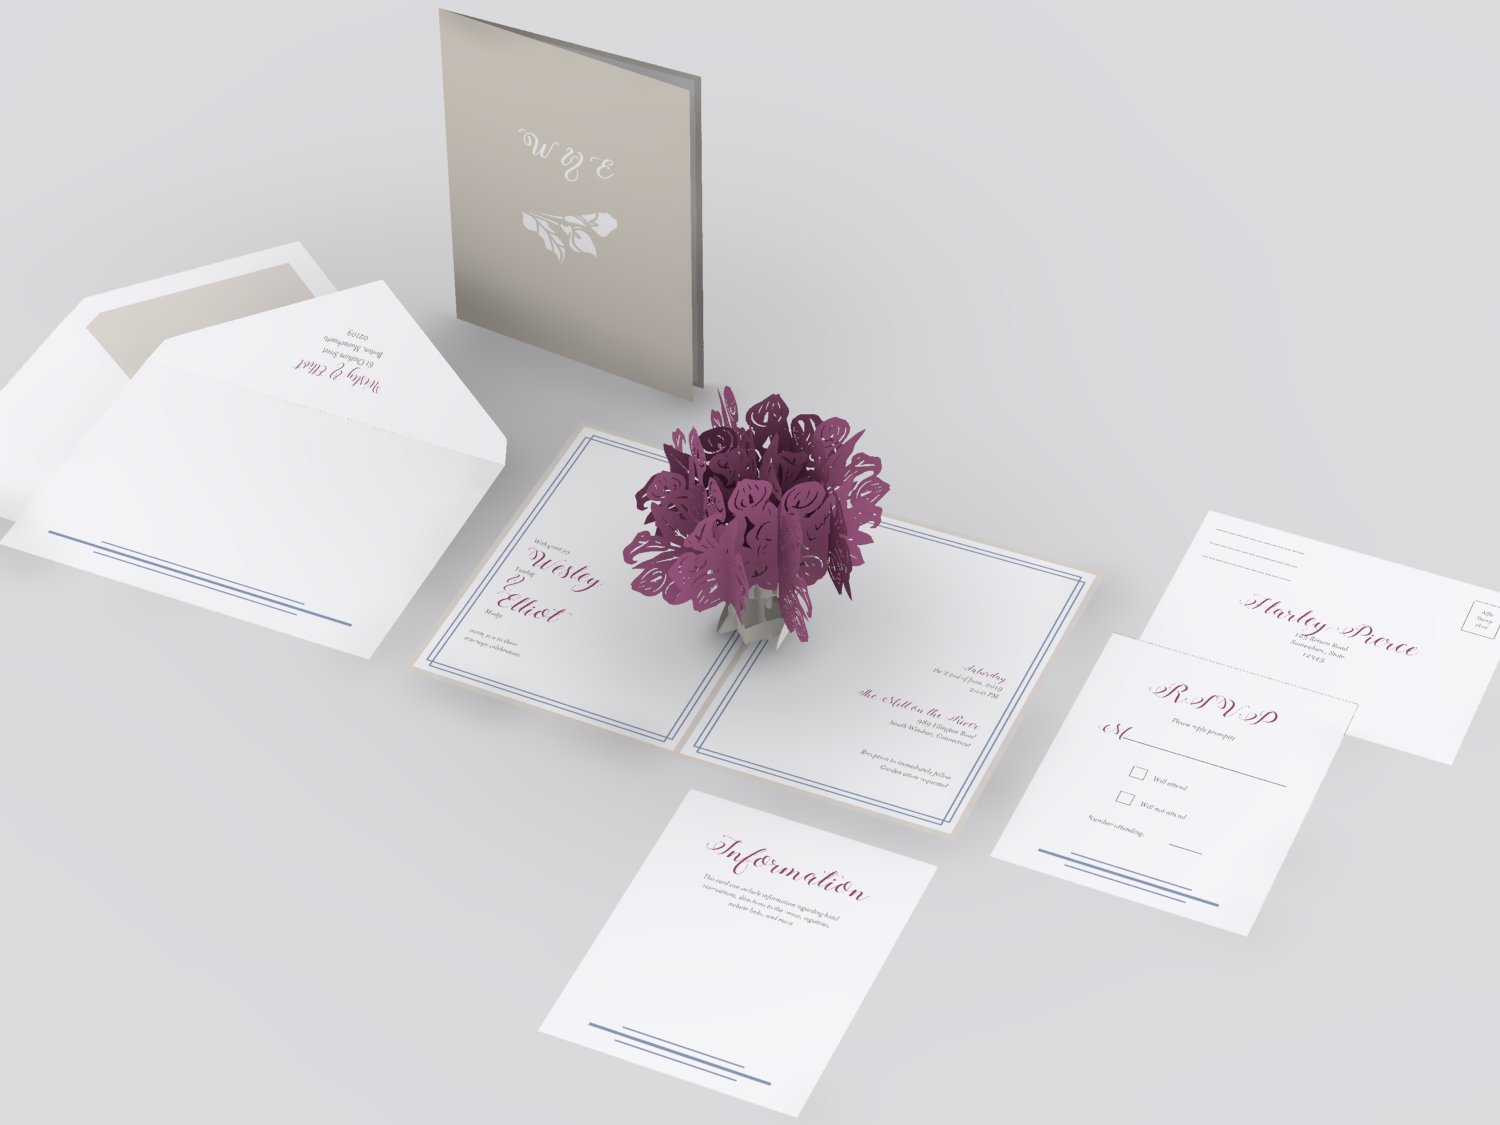 Calla lily bouquet wedding invitation lovepop calla lily bouquet pop up card thumbnail izmirmasajfo